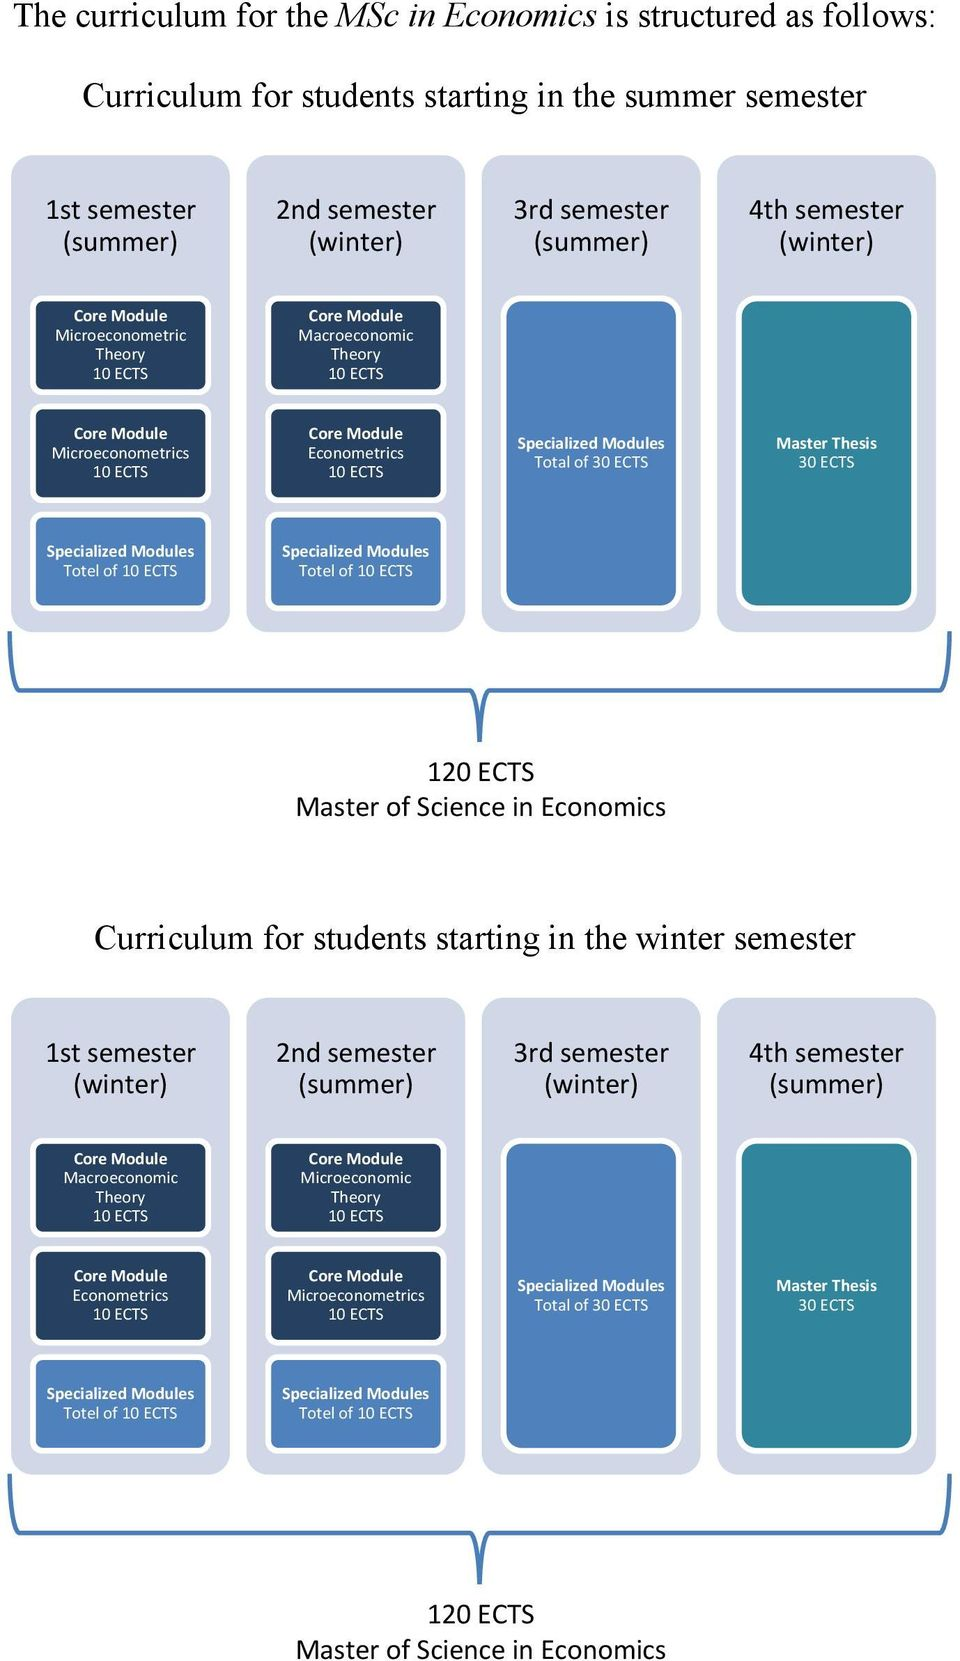 of 30 ECTS Master Thesis 30 ECTS Specialized Modules Totel of 10 ECTS Specialized Modules Totel of 10 ECTS 120 ECTS Master of Science in Economics Curriculum for students starting in the winter